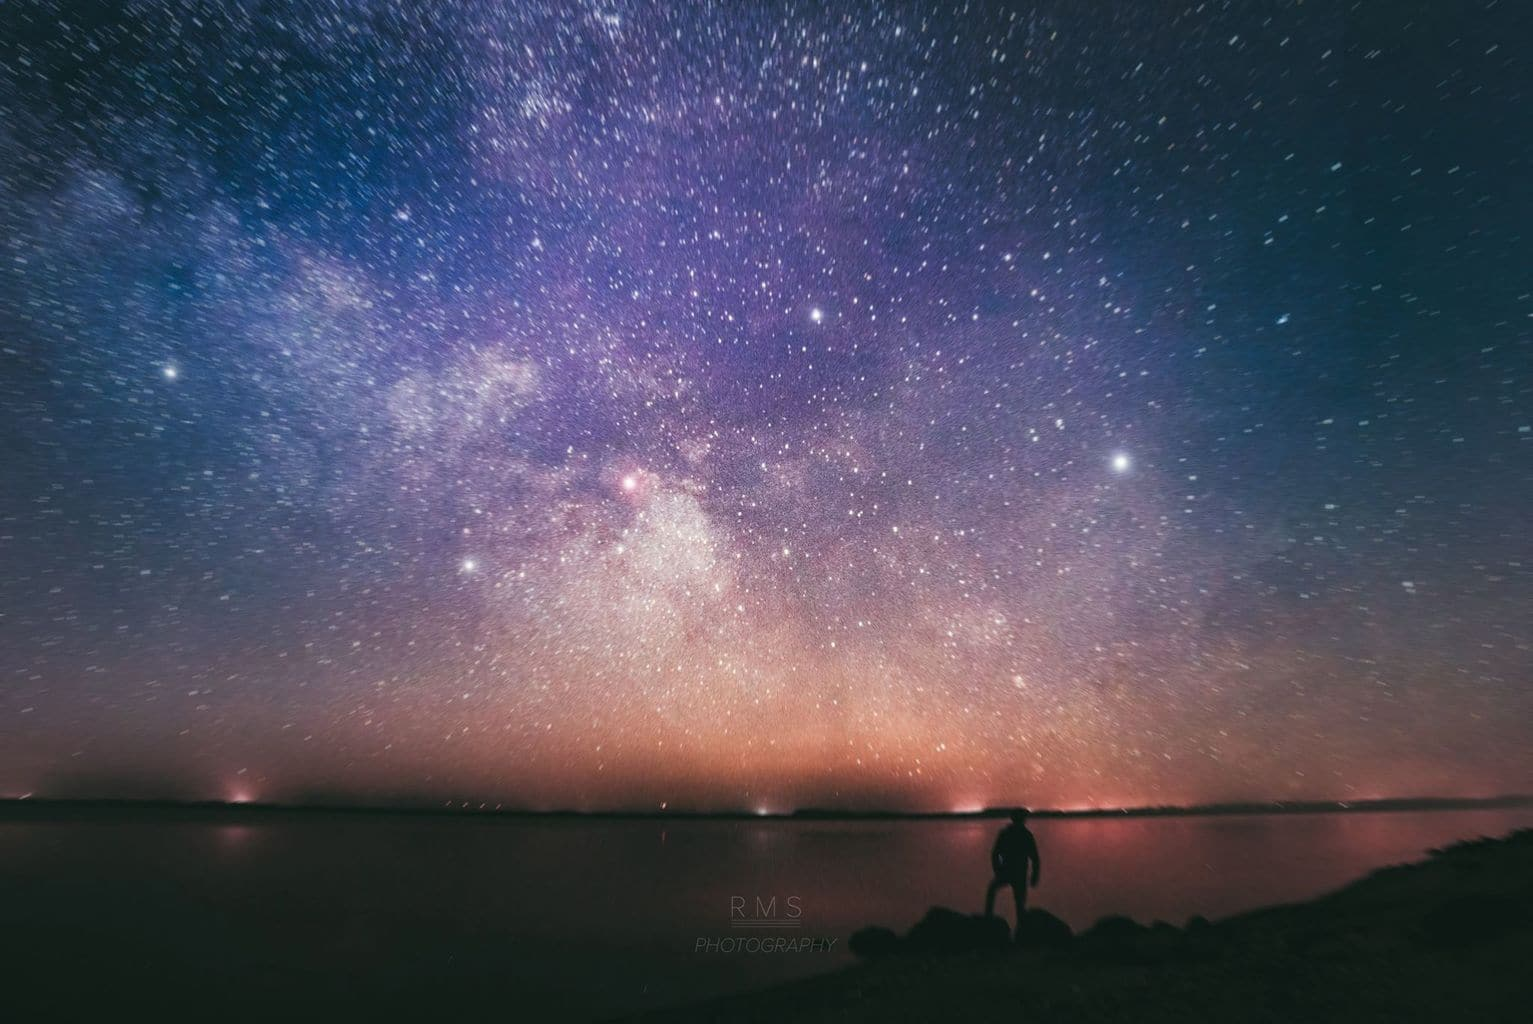 A journey through space and time. Beautiful Milky Way rising above Limfjord, as seen from small city, Nykøbing Mors in western Denmark. Foreground: 30 seconds, f/2.8, ISO 1600 The sky: 141 seconds, f/2.8, ISO 2000, tracked with iOptron skytracker Taken with Canon EOS 7D + Samyang 14mm A good TBT during midnight sun